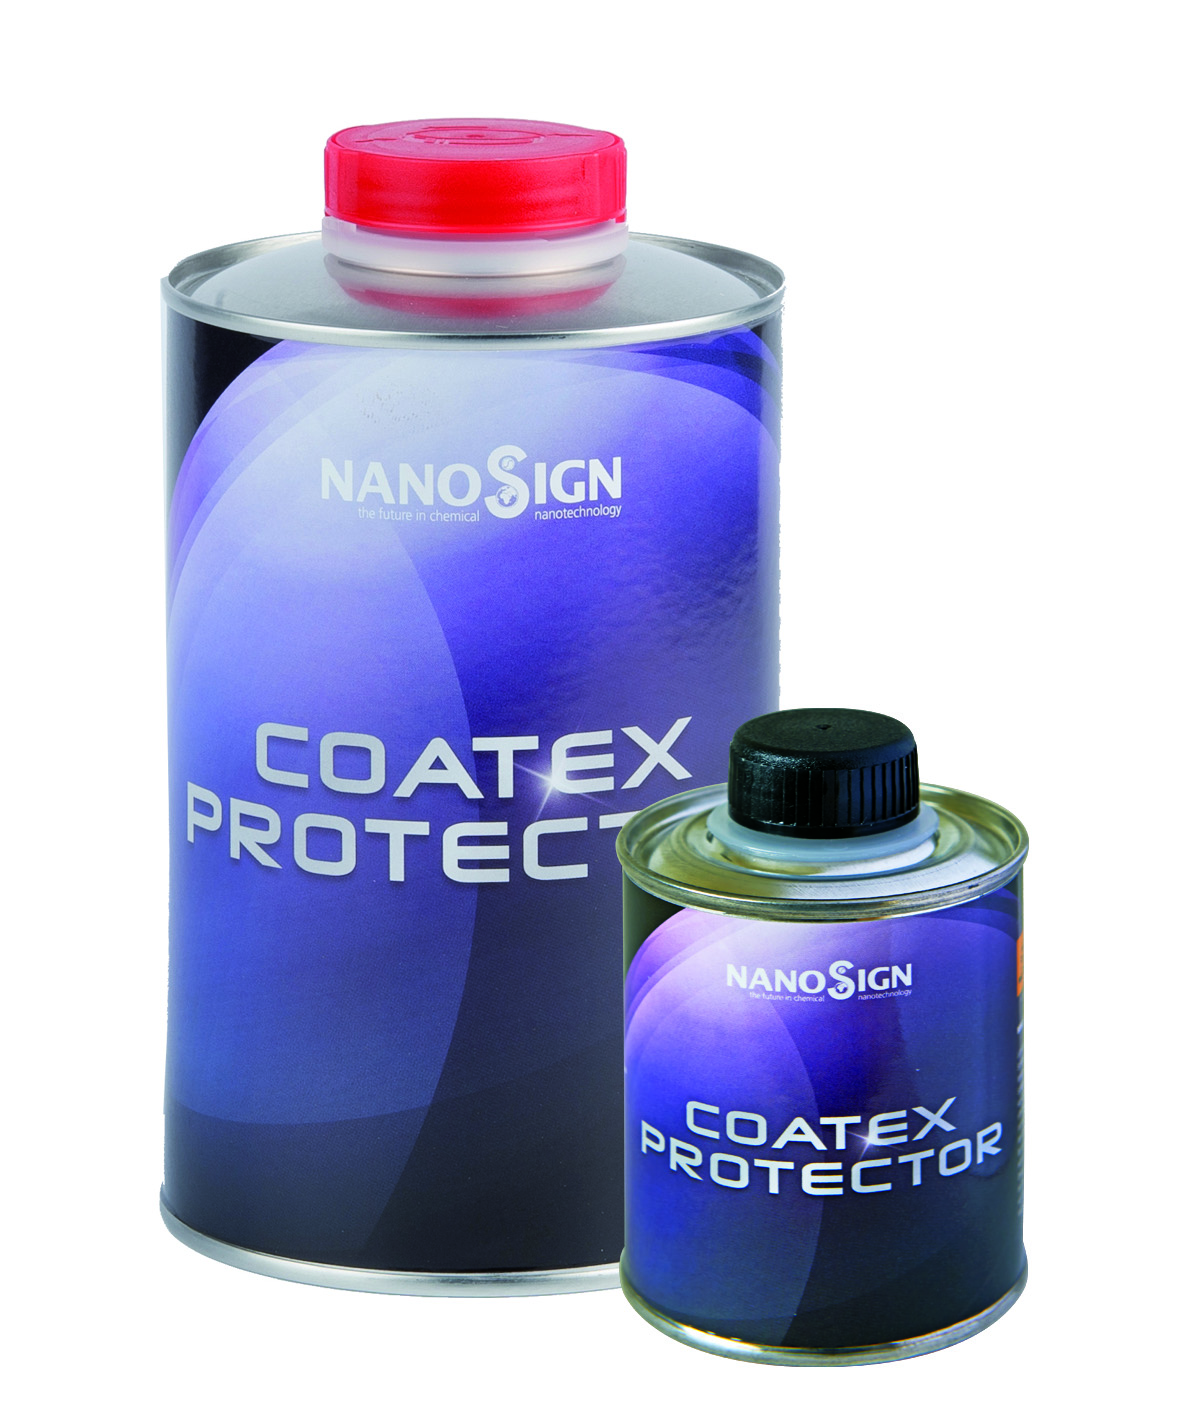 NanoSign Coatex Protector